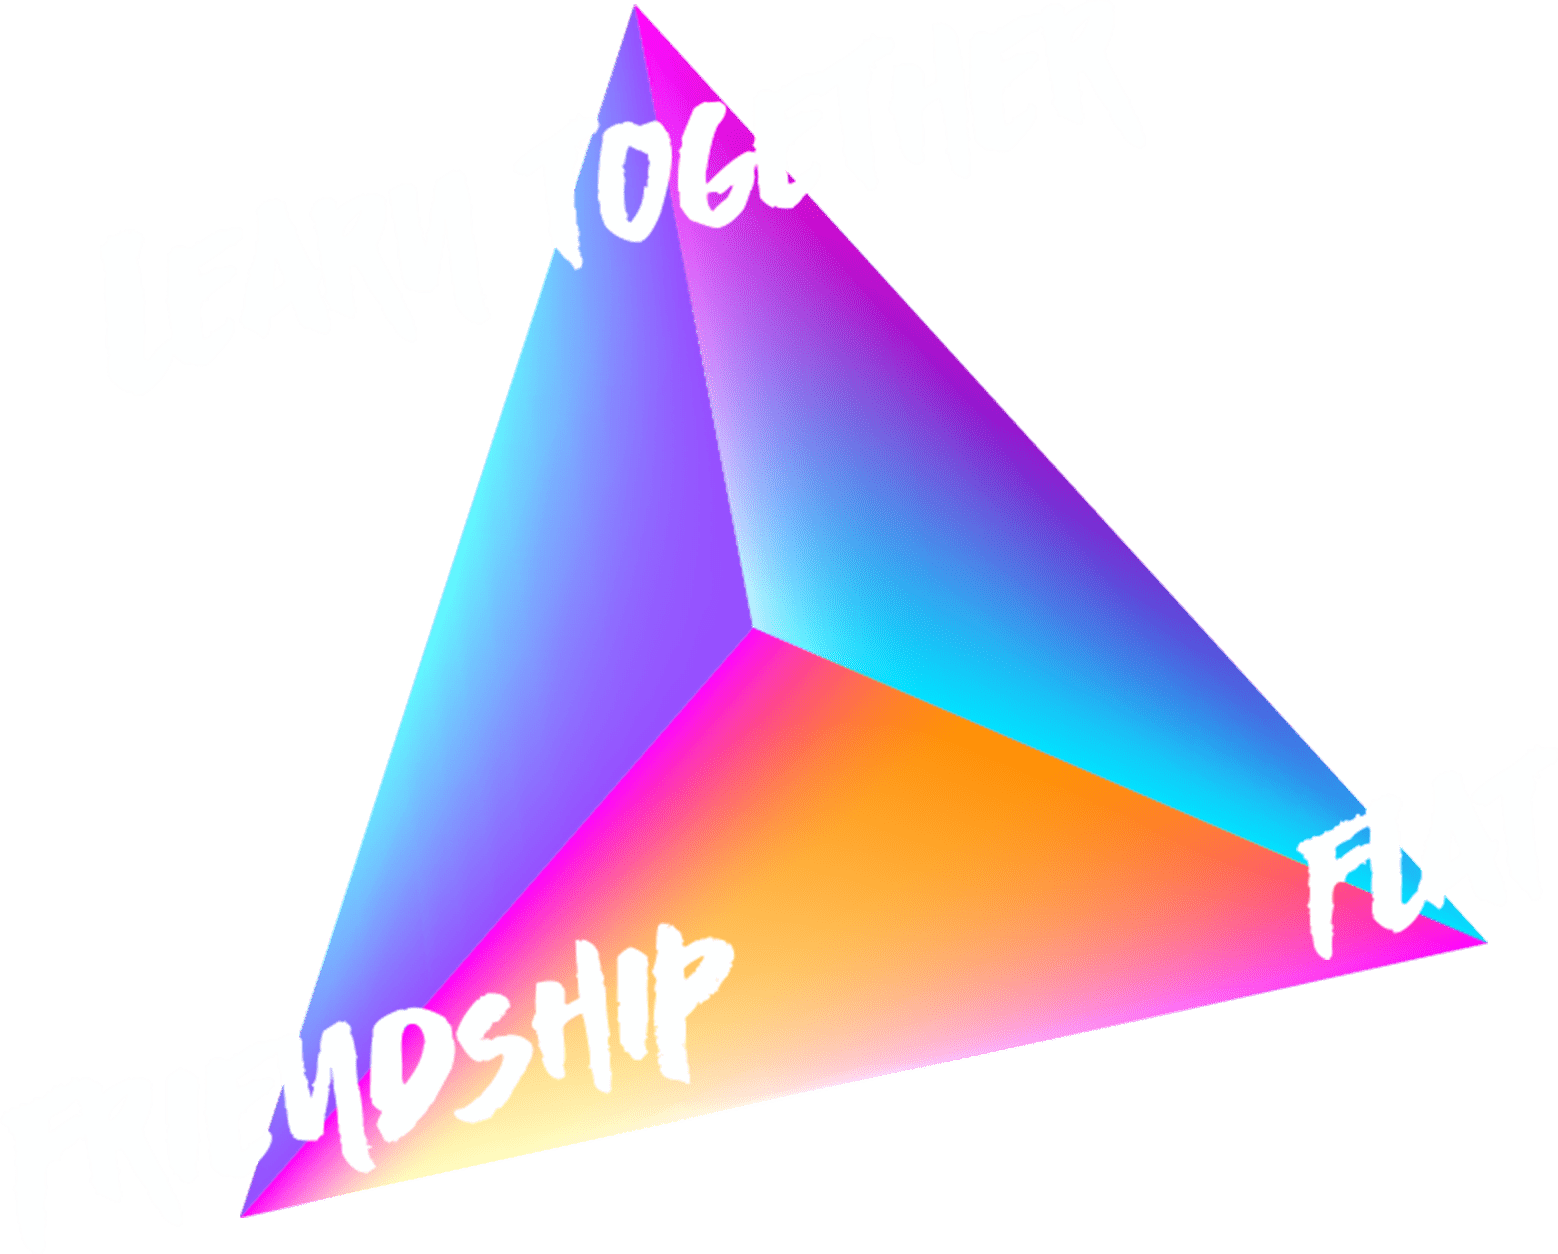 Learn together|Friendship|flat